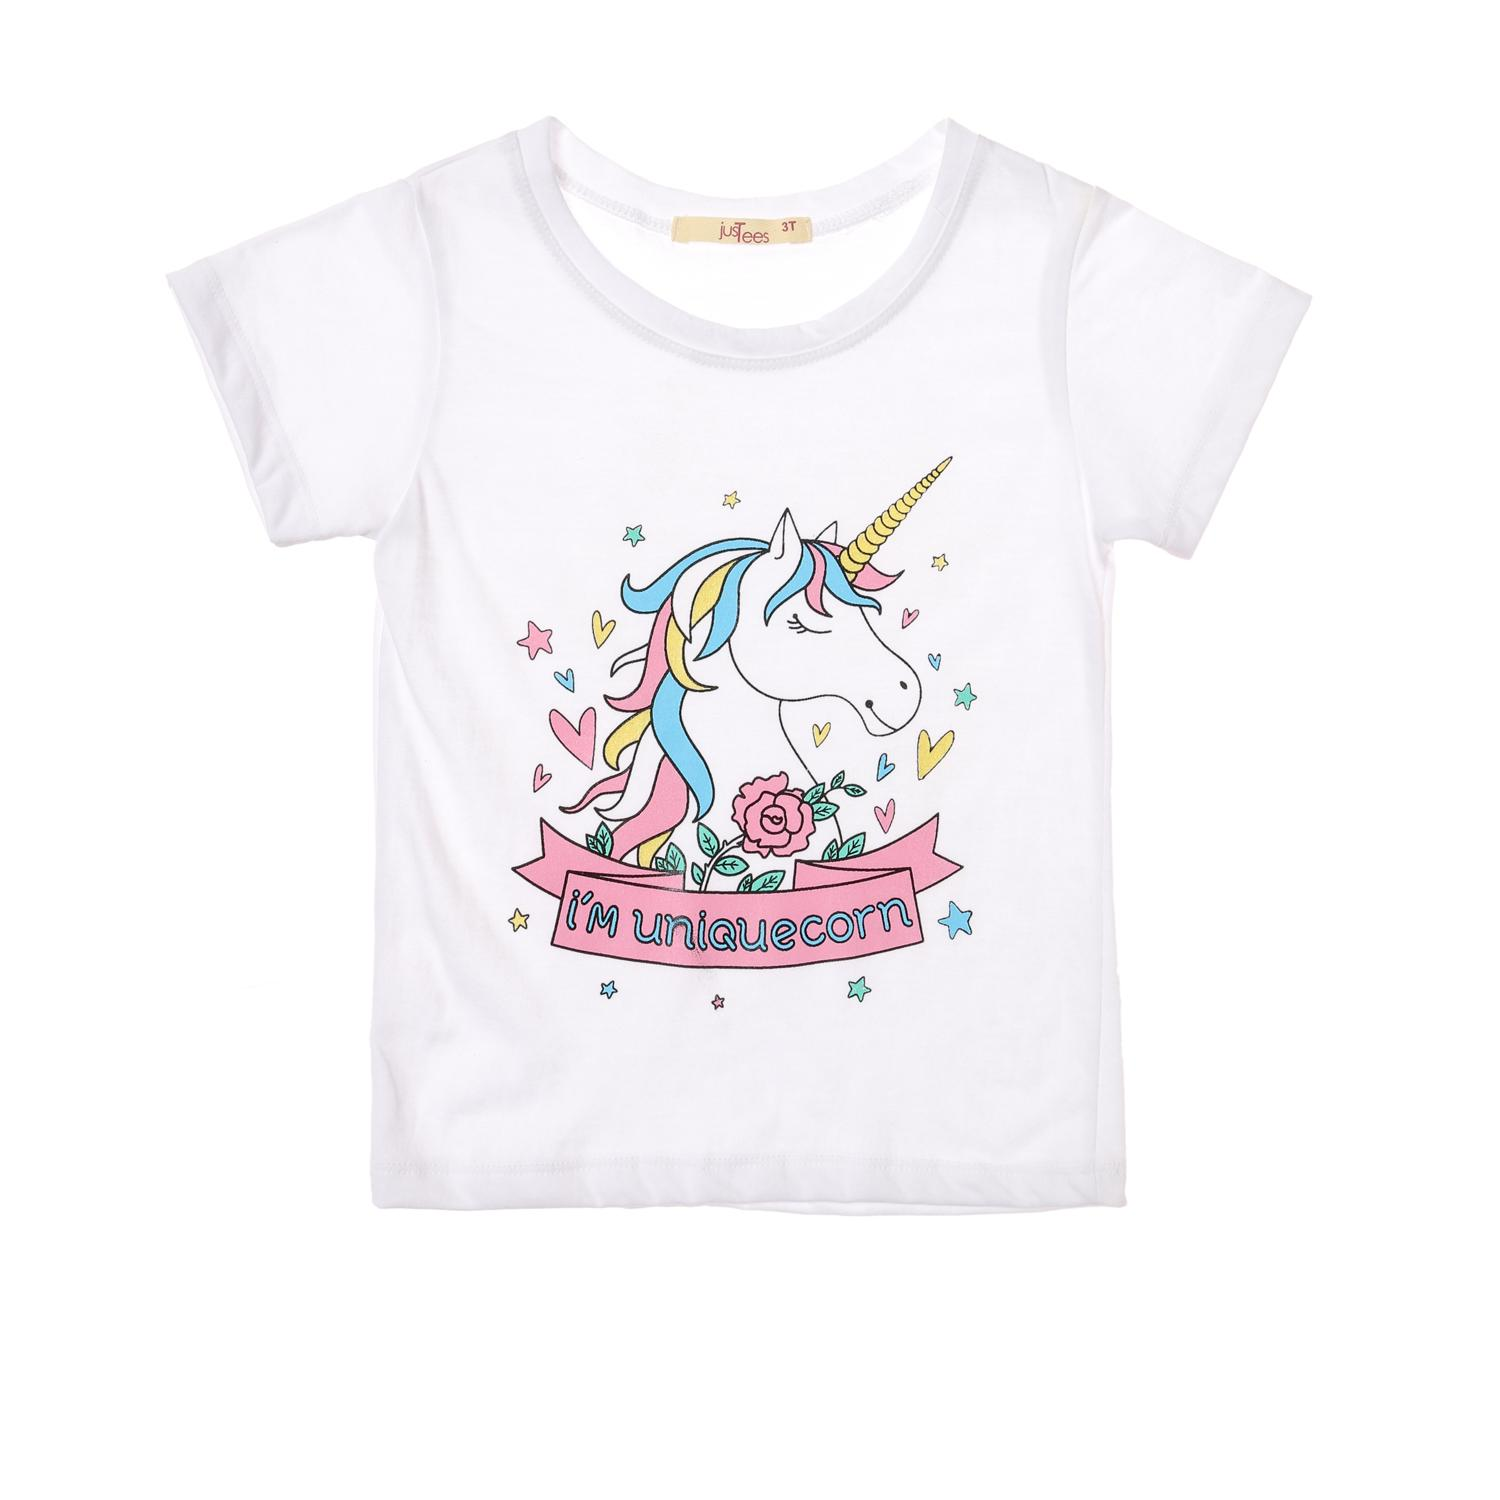 aa055a103fa1 Baby Clothes for sale - Baby Clothing Online Deals & Prices in ...